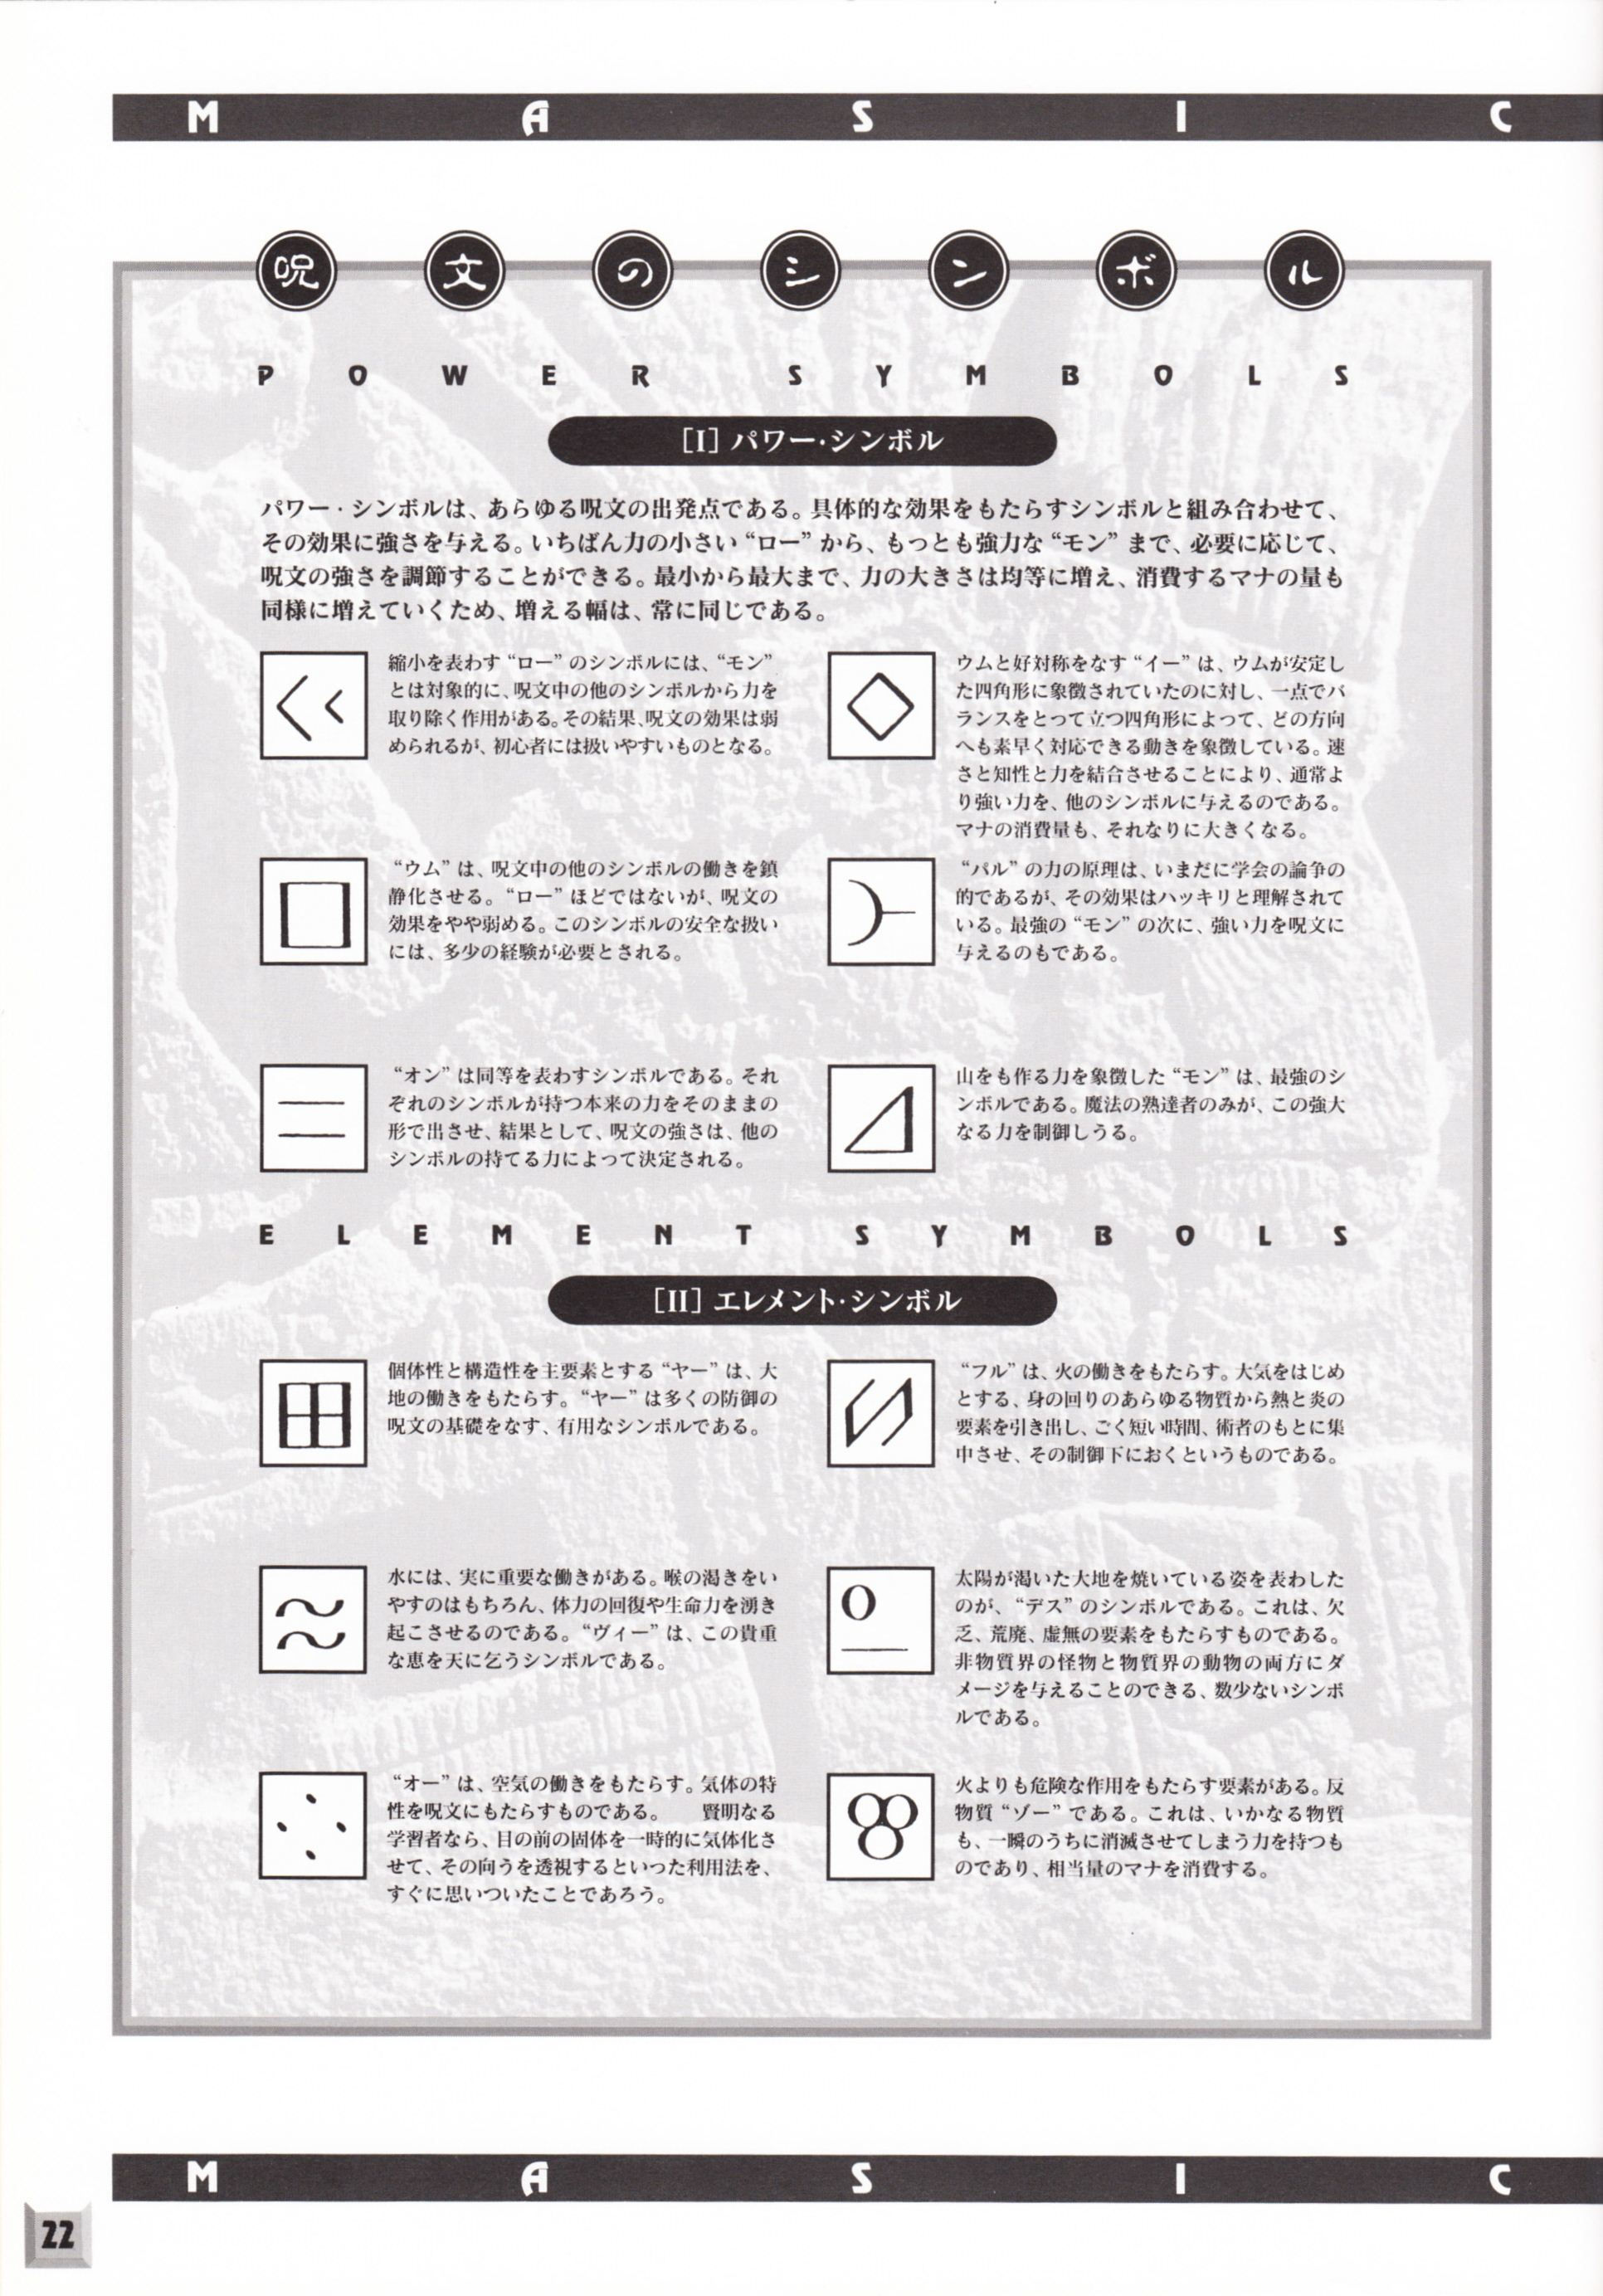 Game - Dungeon Master II - JP - PC-9801 - 3.5-inch - The Guidance Of Adventure - Page 024 - Scan